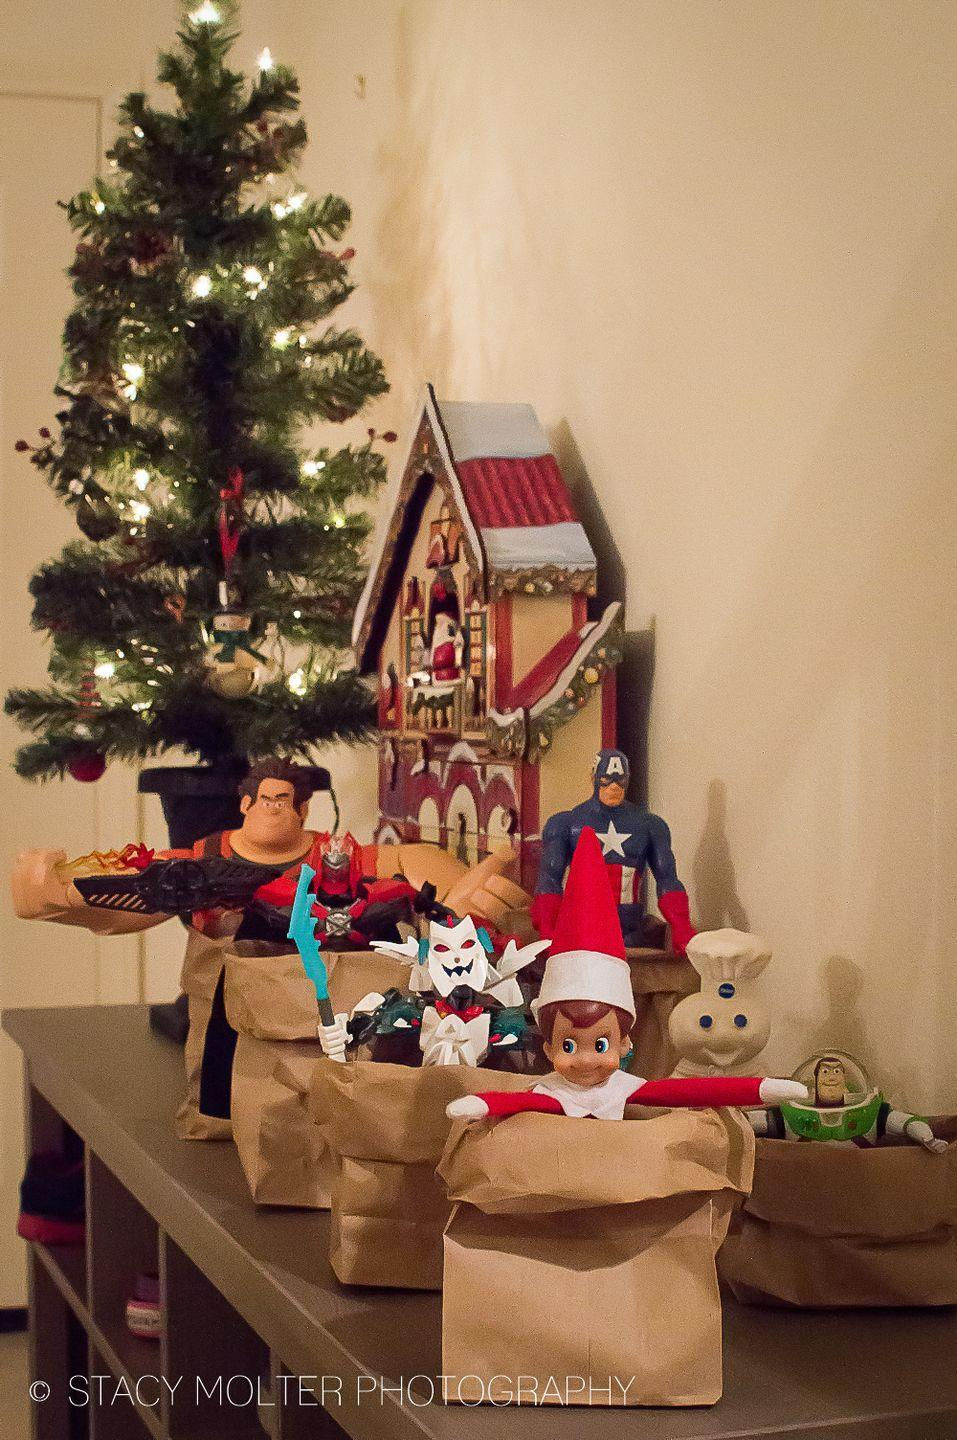 """<p>Your kids will be truly thrilled to see how your elf fares against some of their favorite toys.</p><p><em><a href=""""https://californiaunpublished.com/45-amazingly-easy-elf-on-the-shelf-ideas-for-busy-moms/"""" rel=""""nofollow noopener"""" target=""""_blank"""" data-ylk=""""slk:See more at Fancy Shanty »"""" class=""""link rapid-noclick-resp"""">See more at Fancy Shanty »</a></em></p>"""